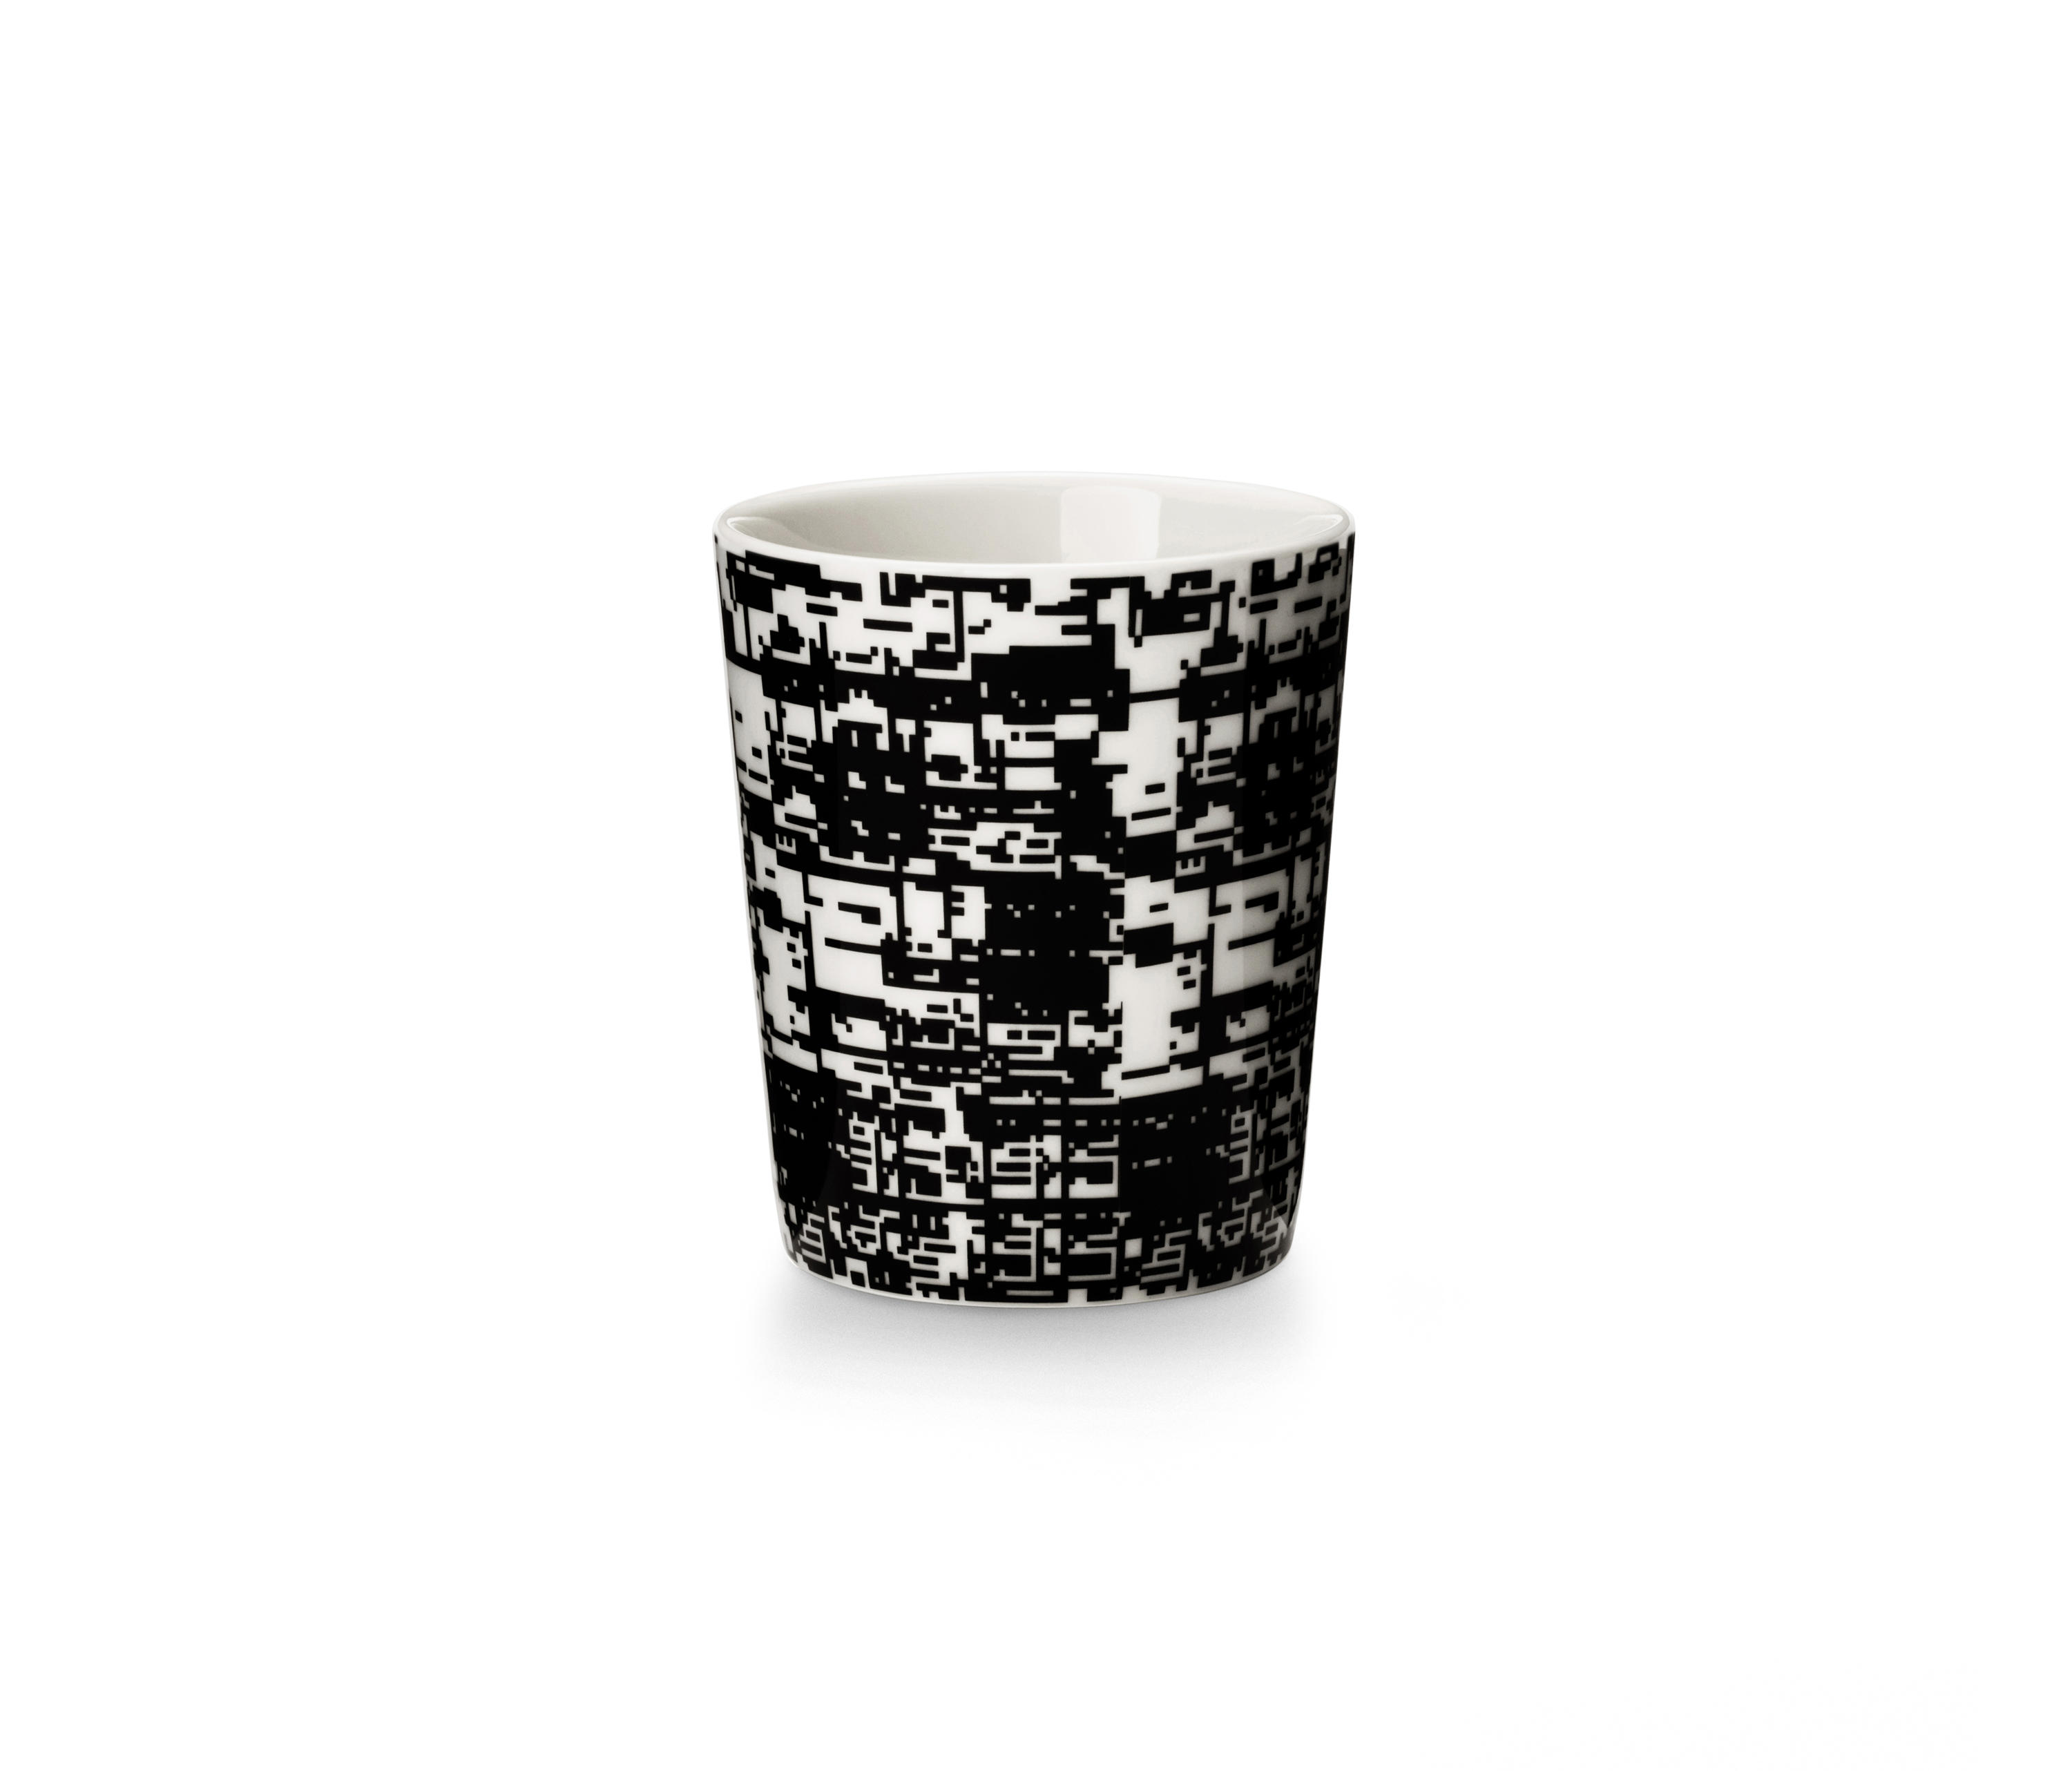 urban landscape mugs overview by design house stockholm dinnerware - Dinnerware Design House Stockholm